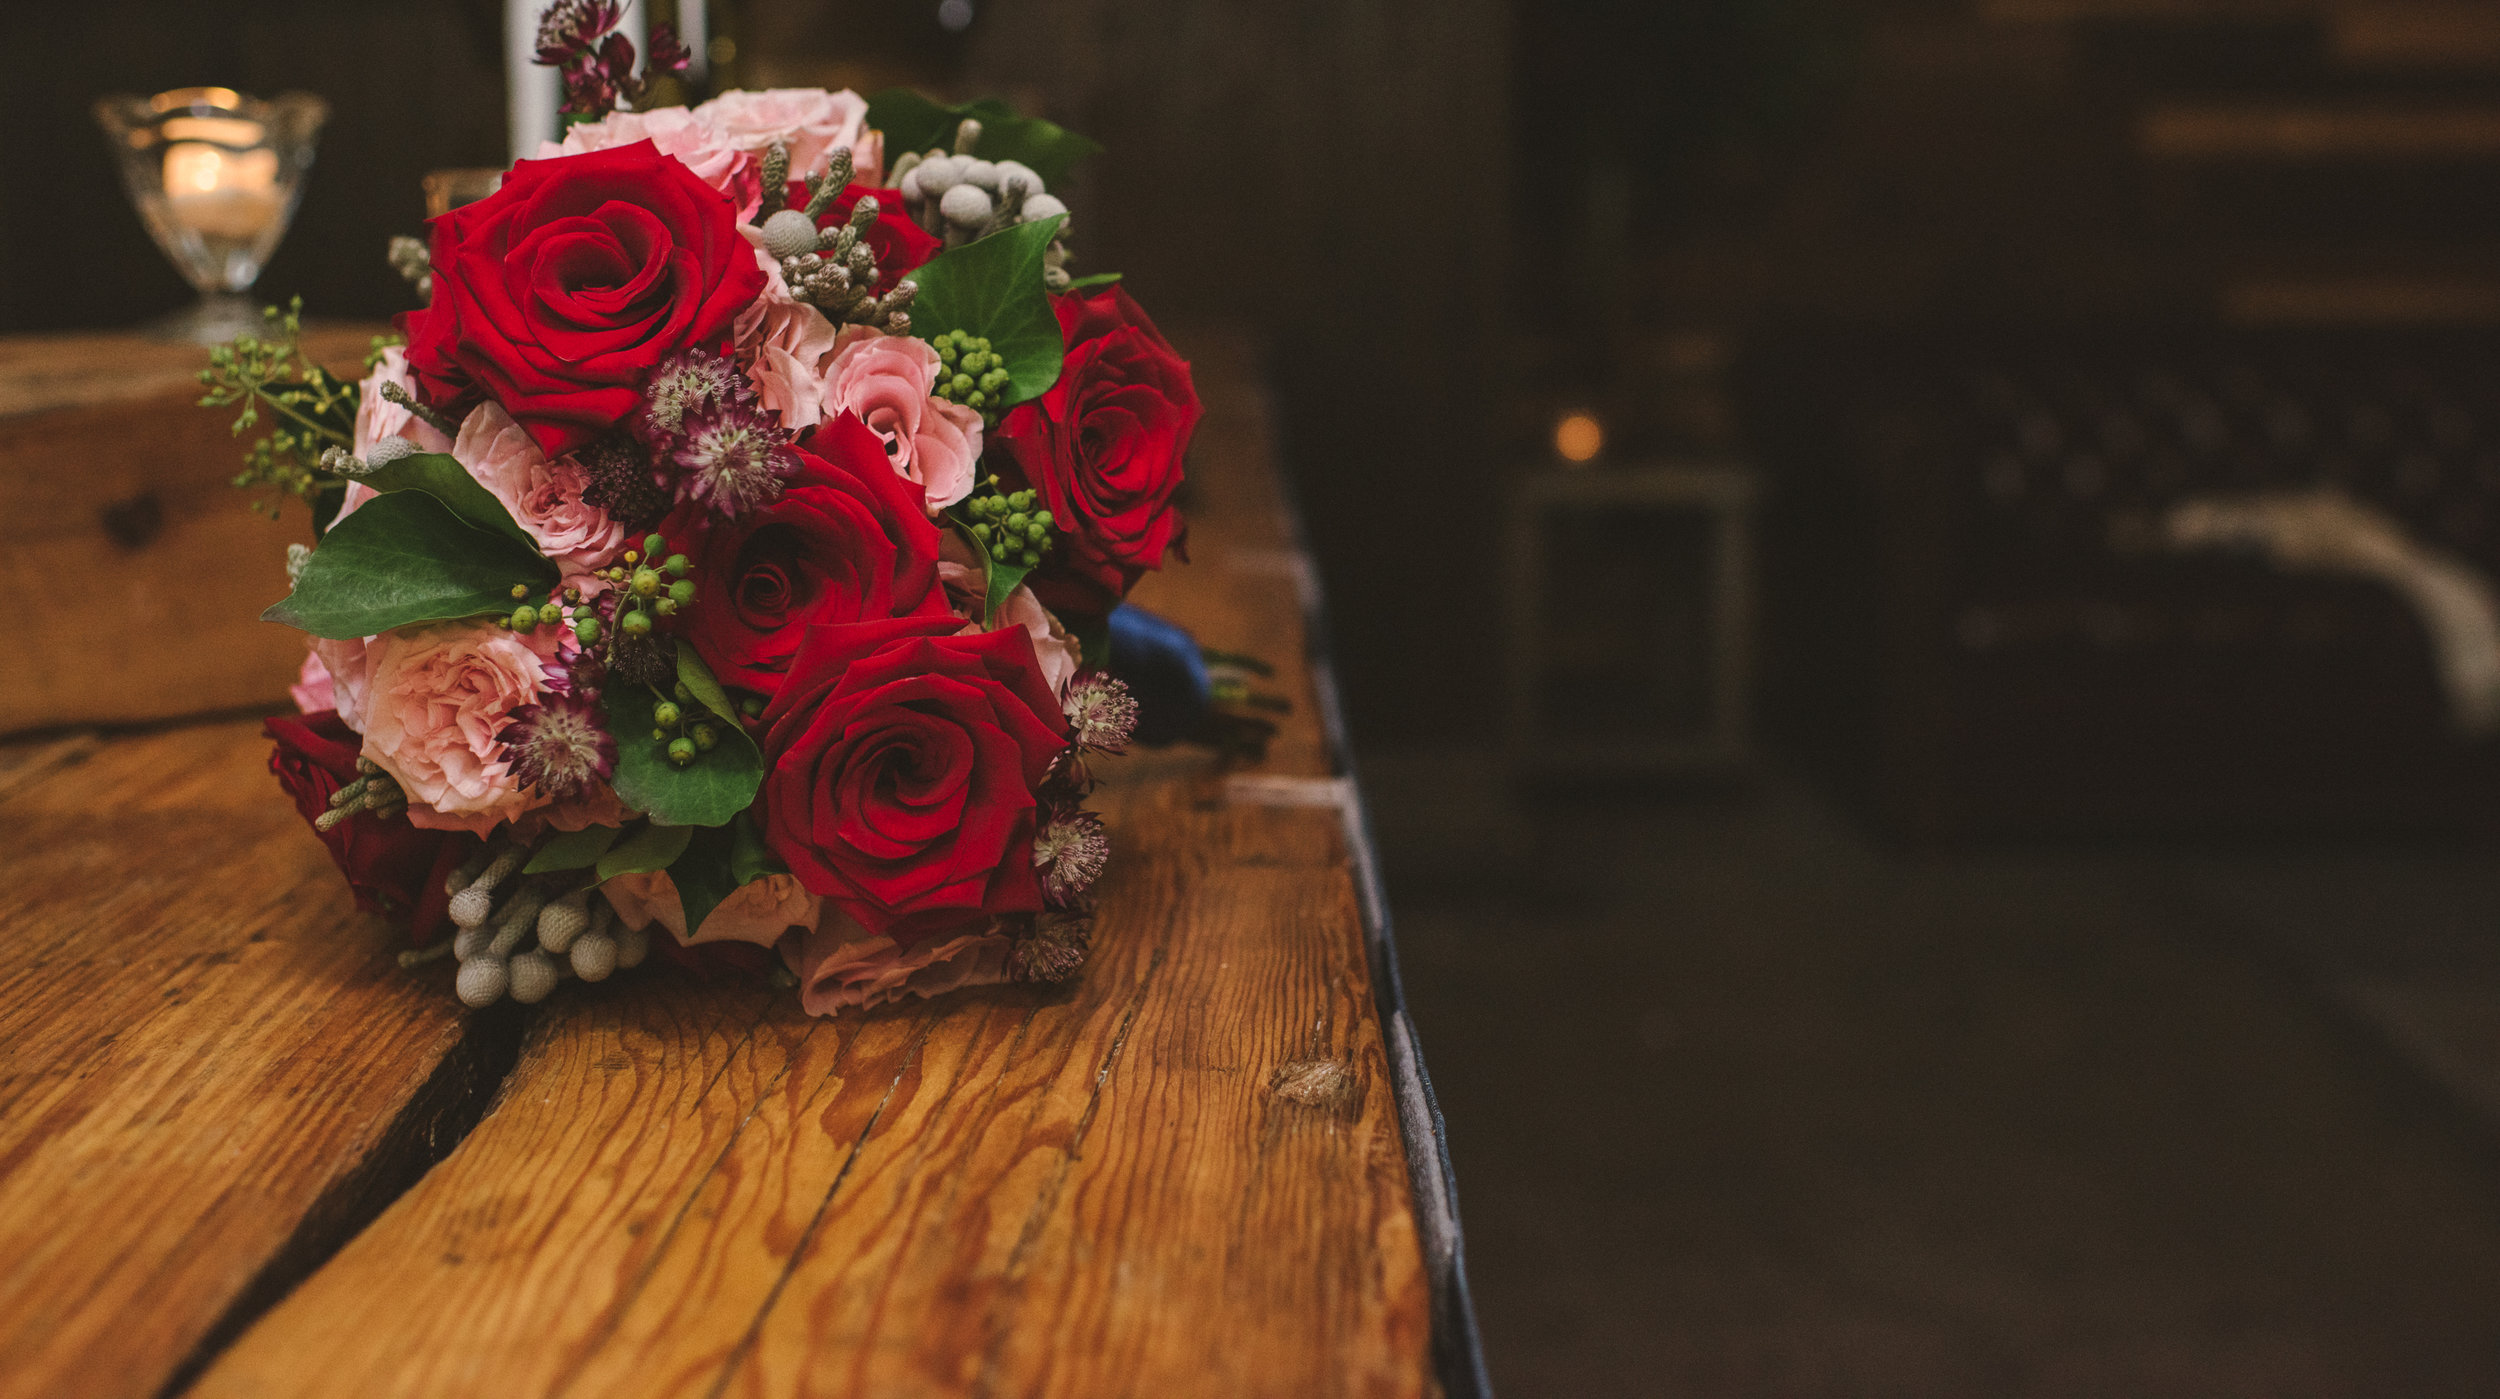 BROOKLYN WINERY WEDDING - TWOTWENTY by CHI-CHI AGBIM-198.jpg